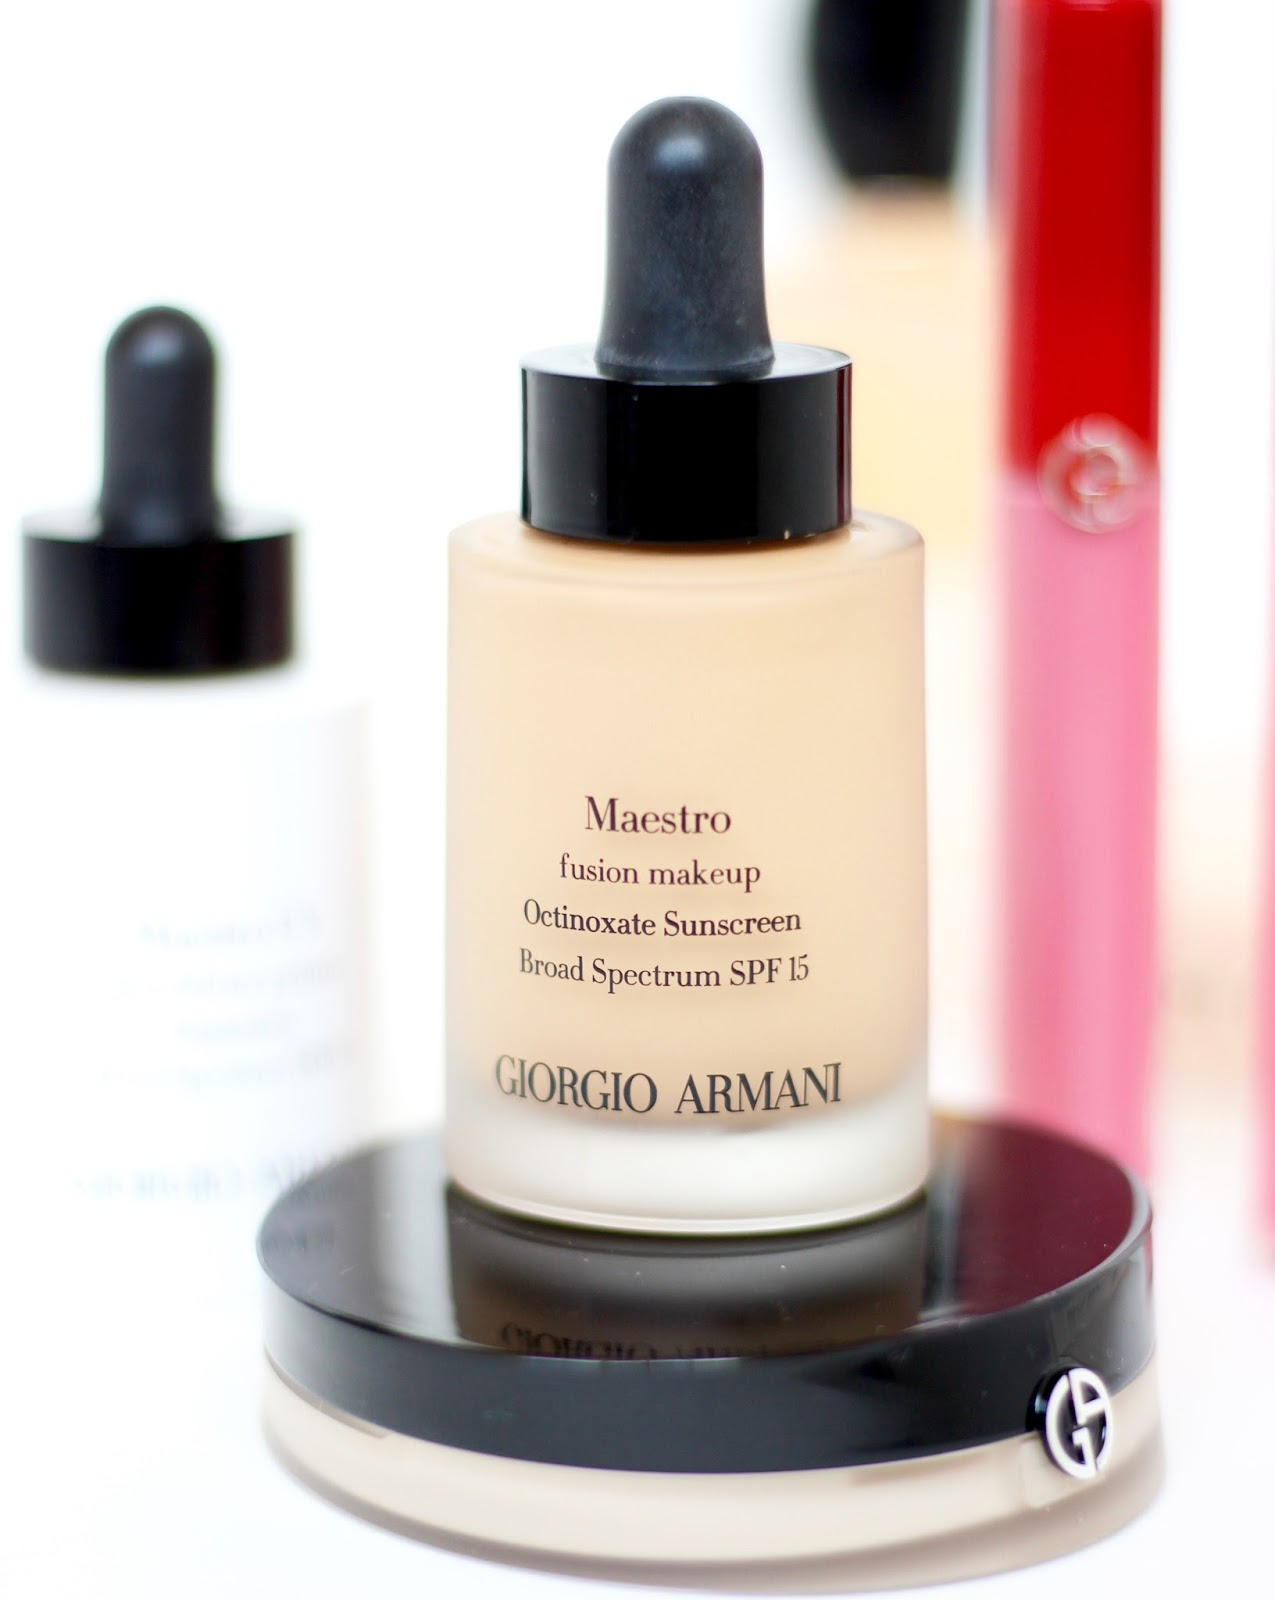 Armani Maestro Foundation Review